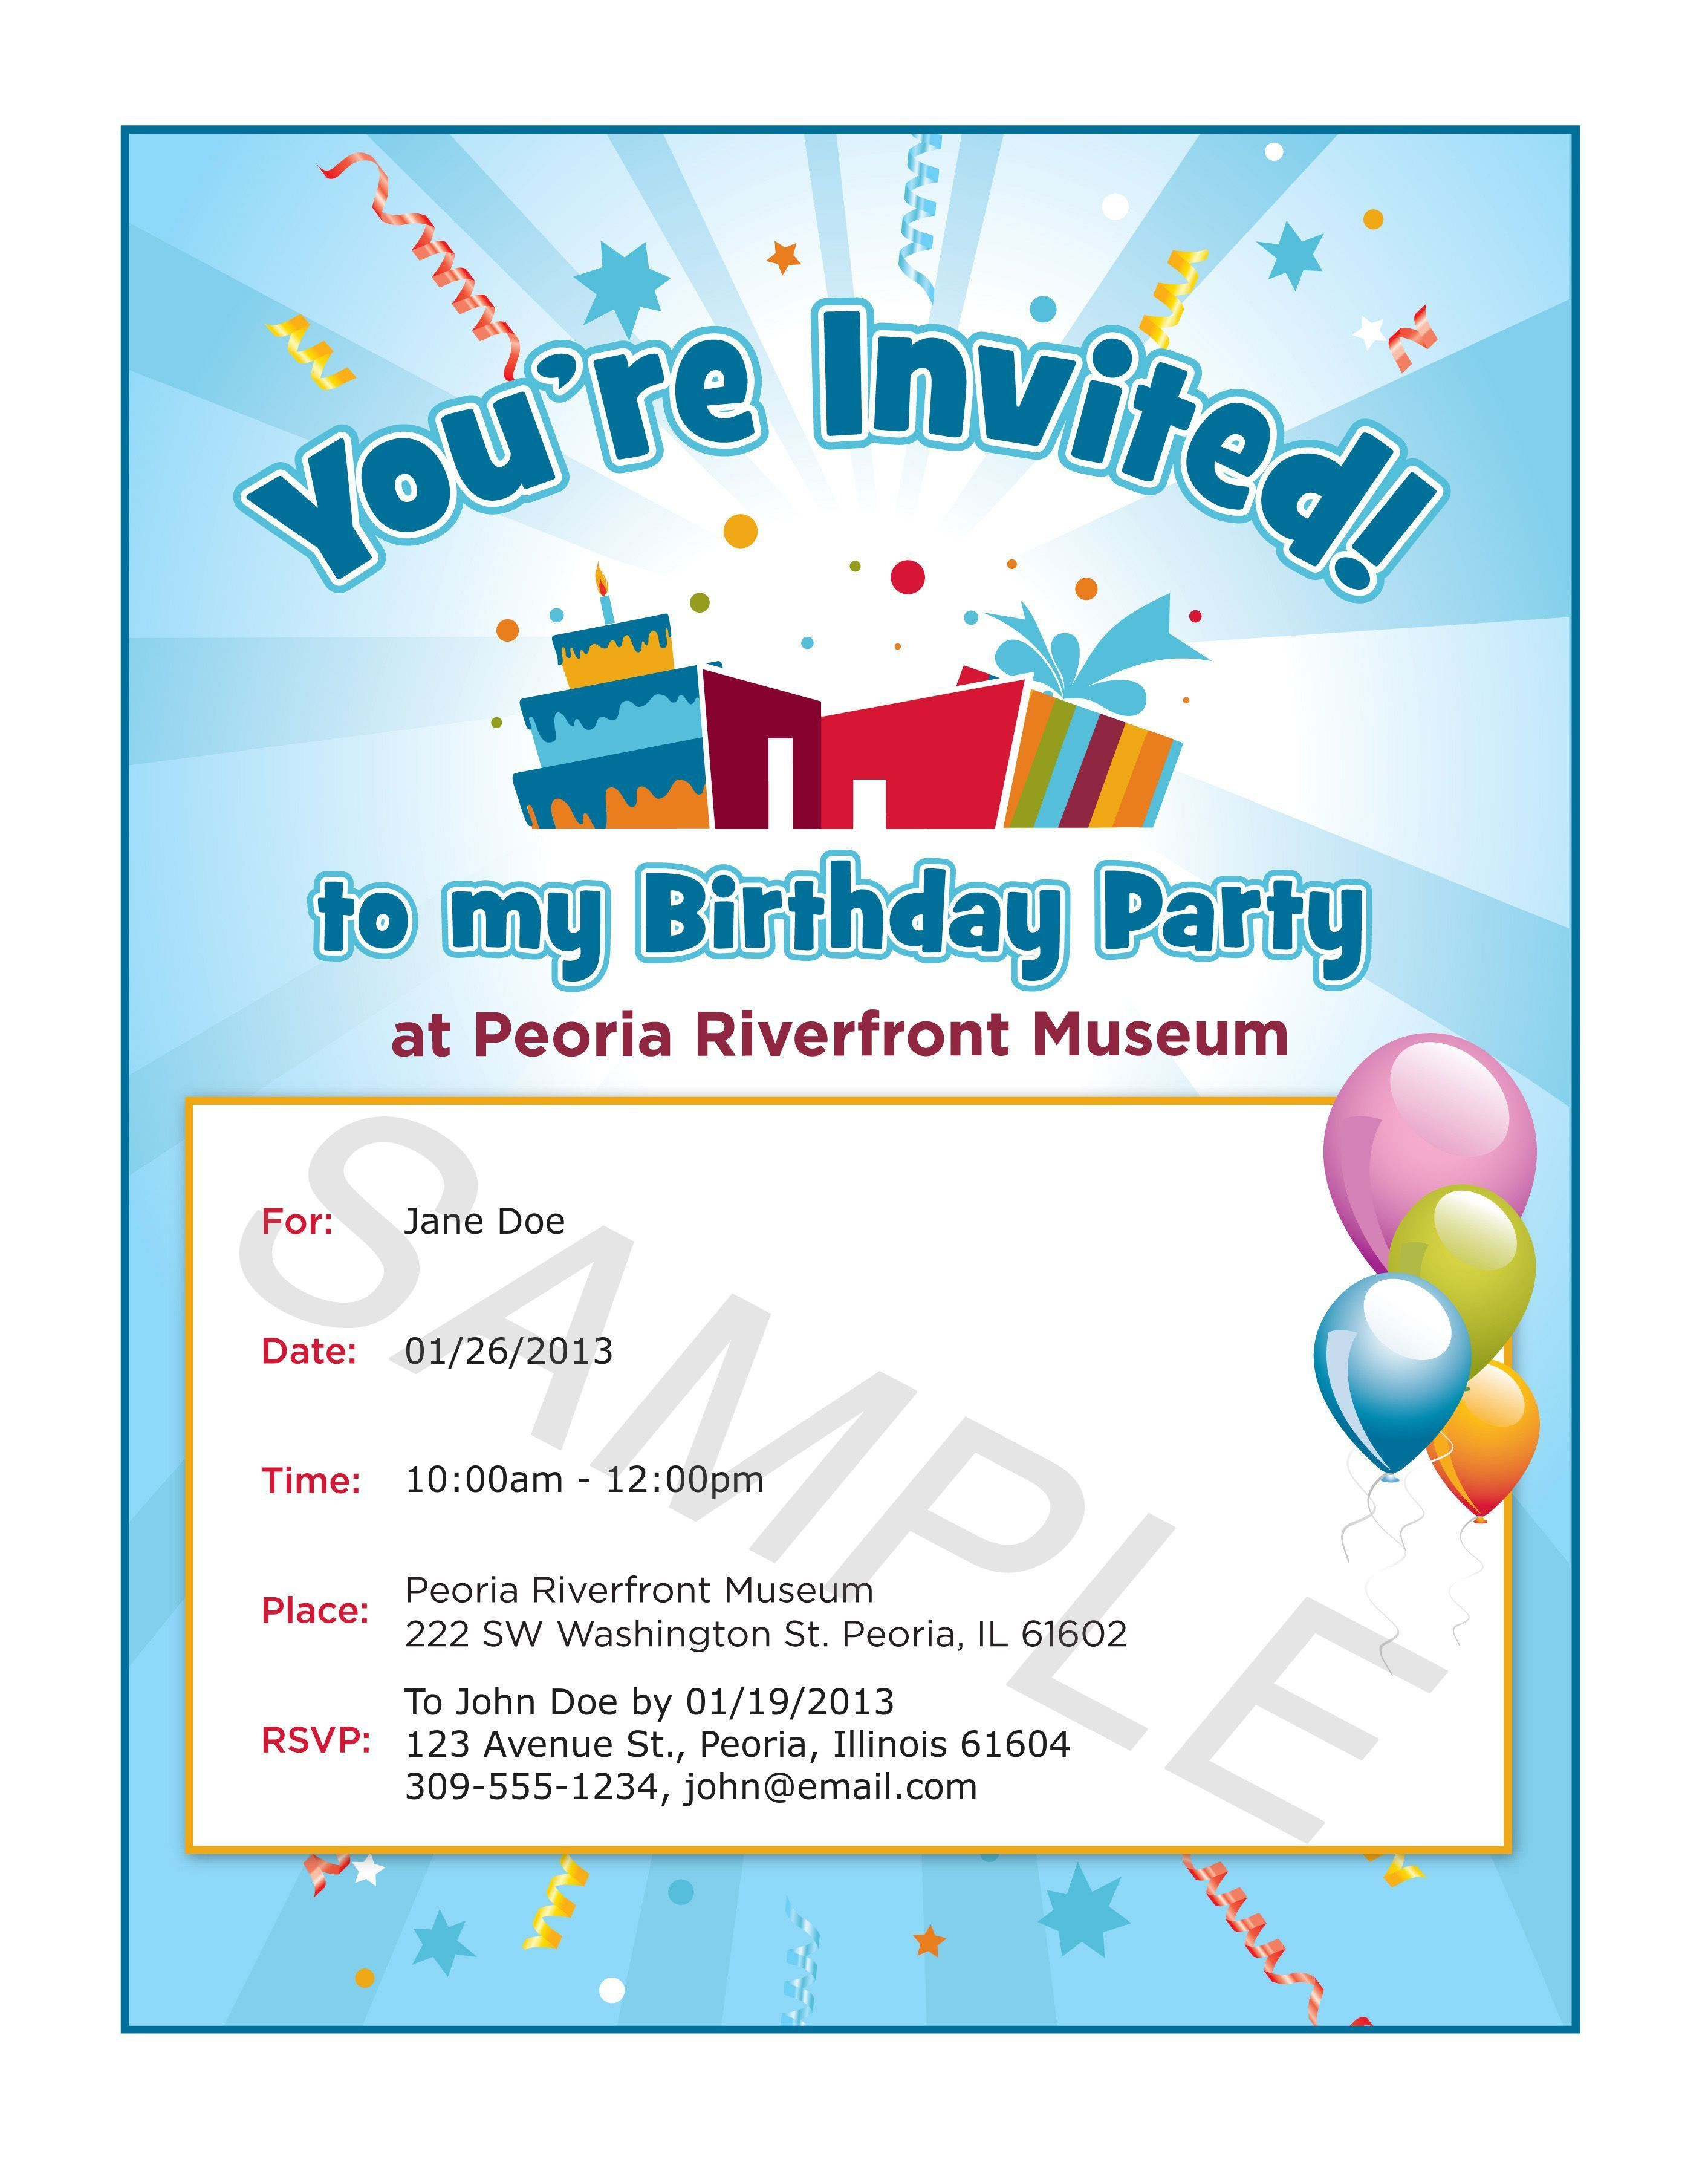 005 Shocking Birthday Invitation Wording Example High Def  Examples Party Invite Brunch IdeaFull